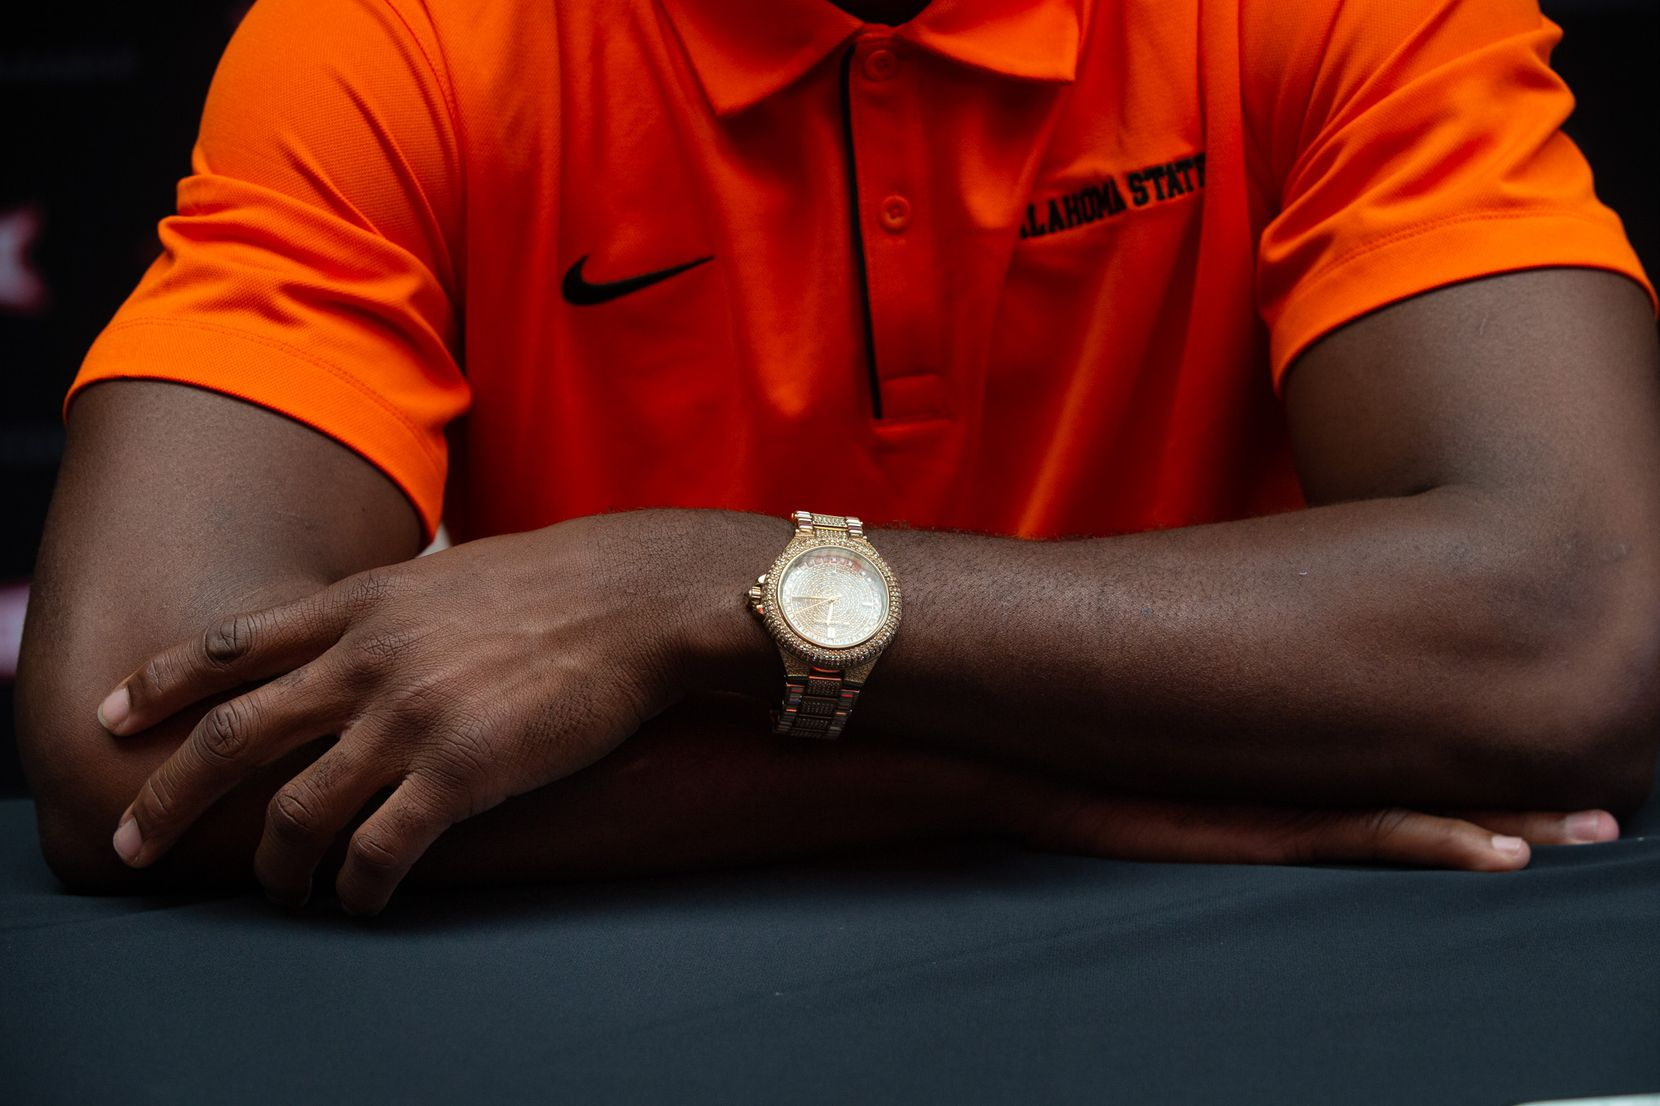 Oklahoma State University football cornerback A.J. Green wears a Michael Kors watch during the Big 12 Conference Media Days.